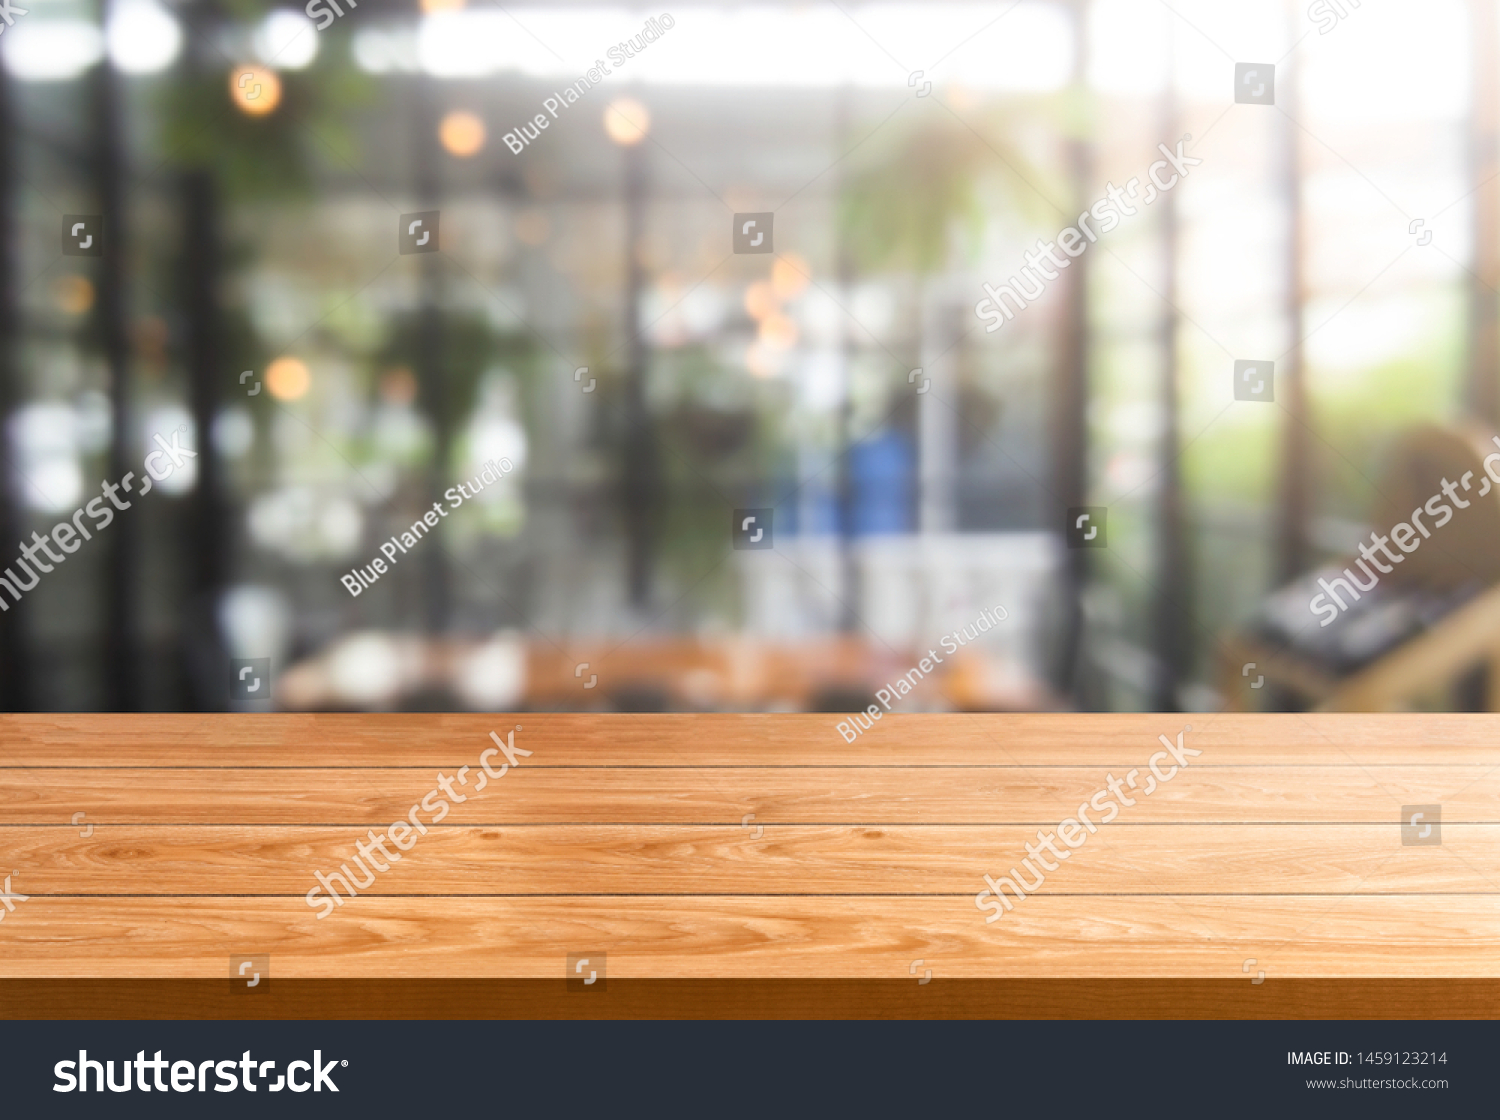 Wood table in blurry background of modern restaurant room or coffee shop with empty copy space on the table for product display mockup. Interior restaurant counter design concept. #1459123214